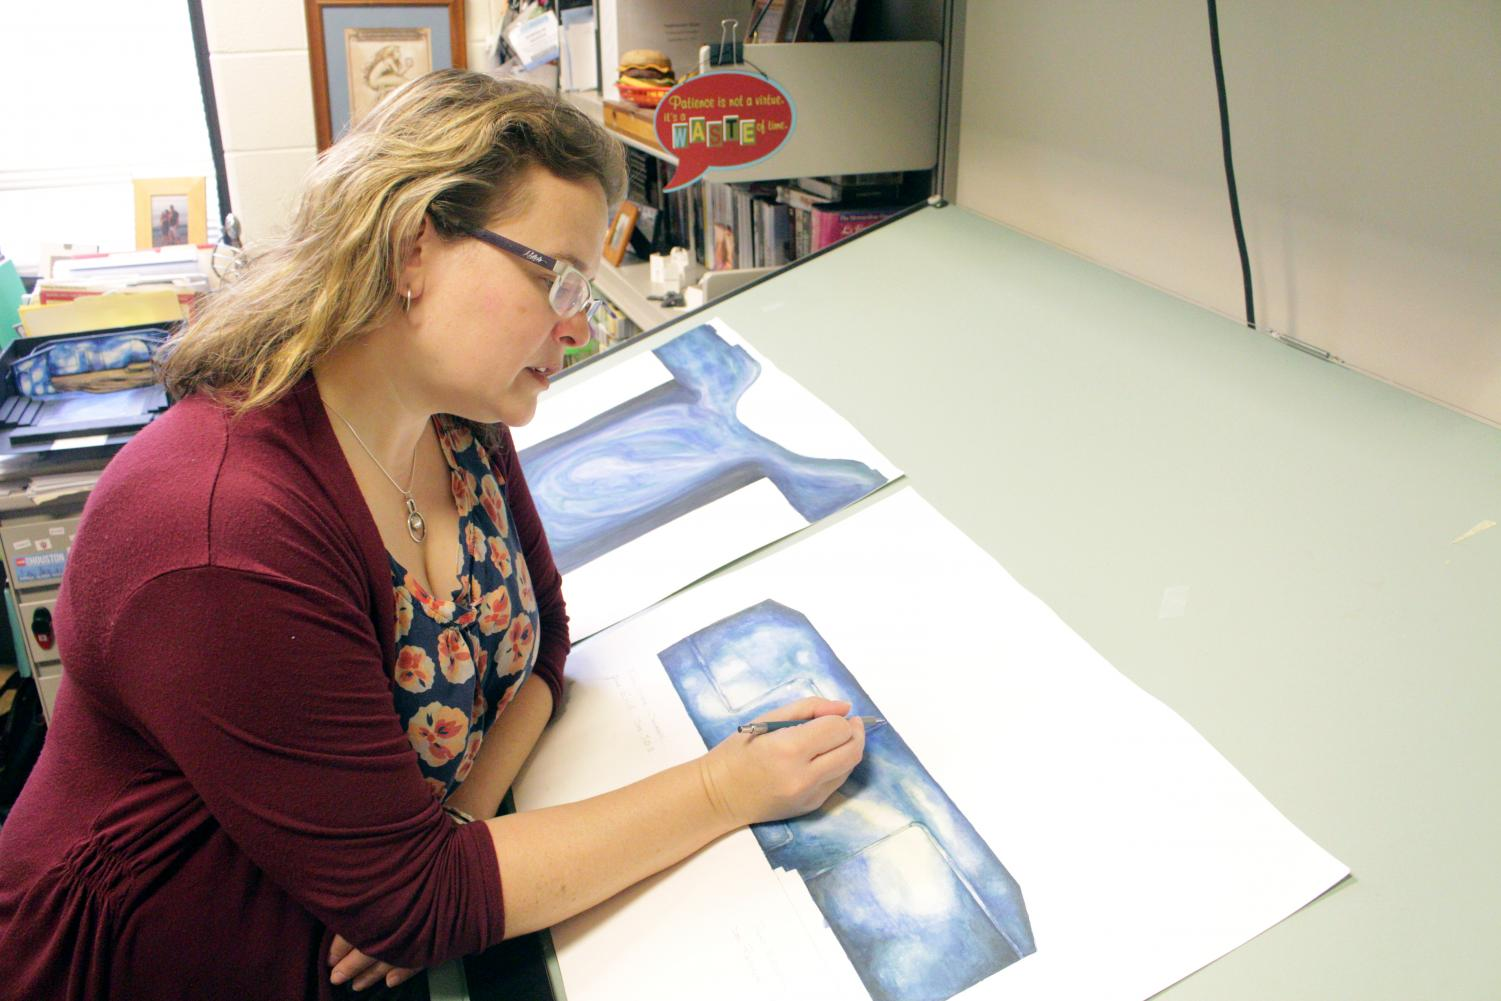 Professor Rebekka Meixner-Hanks diligently works on a new stage set she is designing for the IU Southeast Theatre Department.